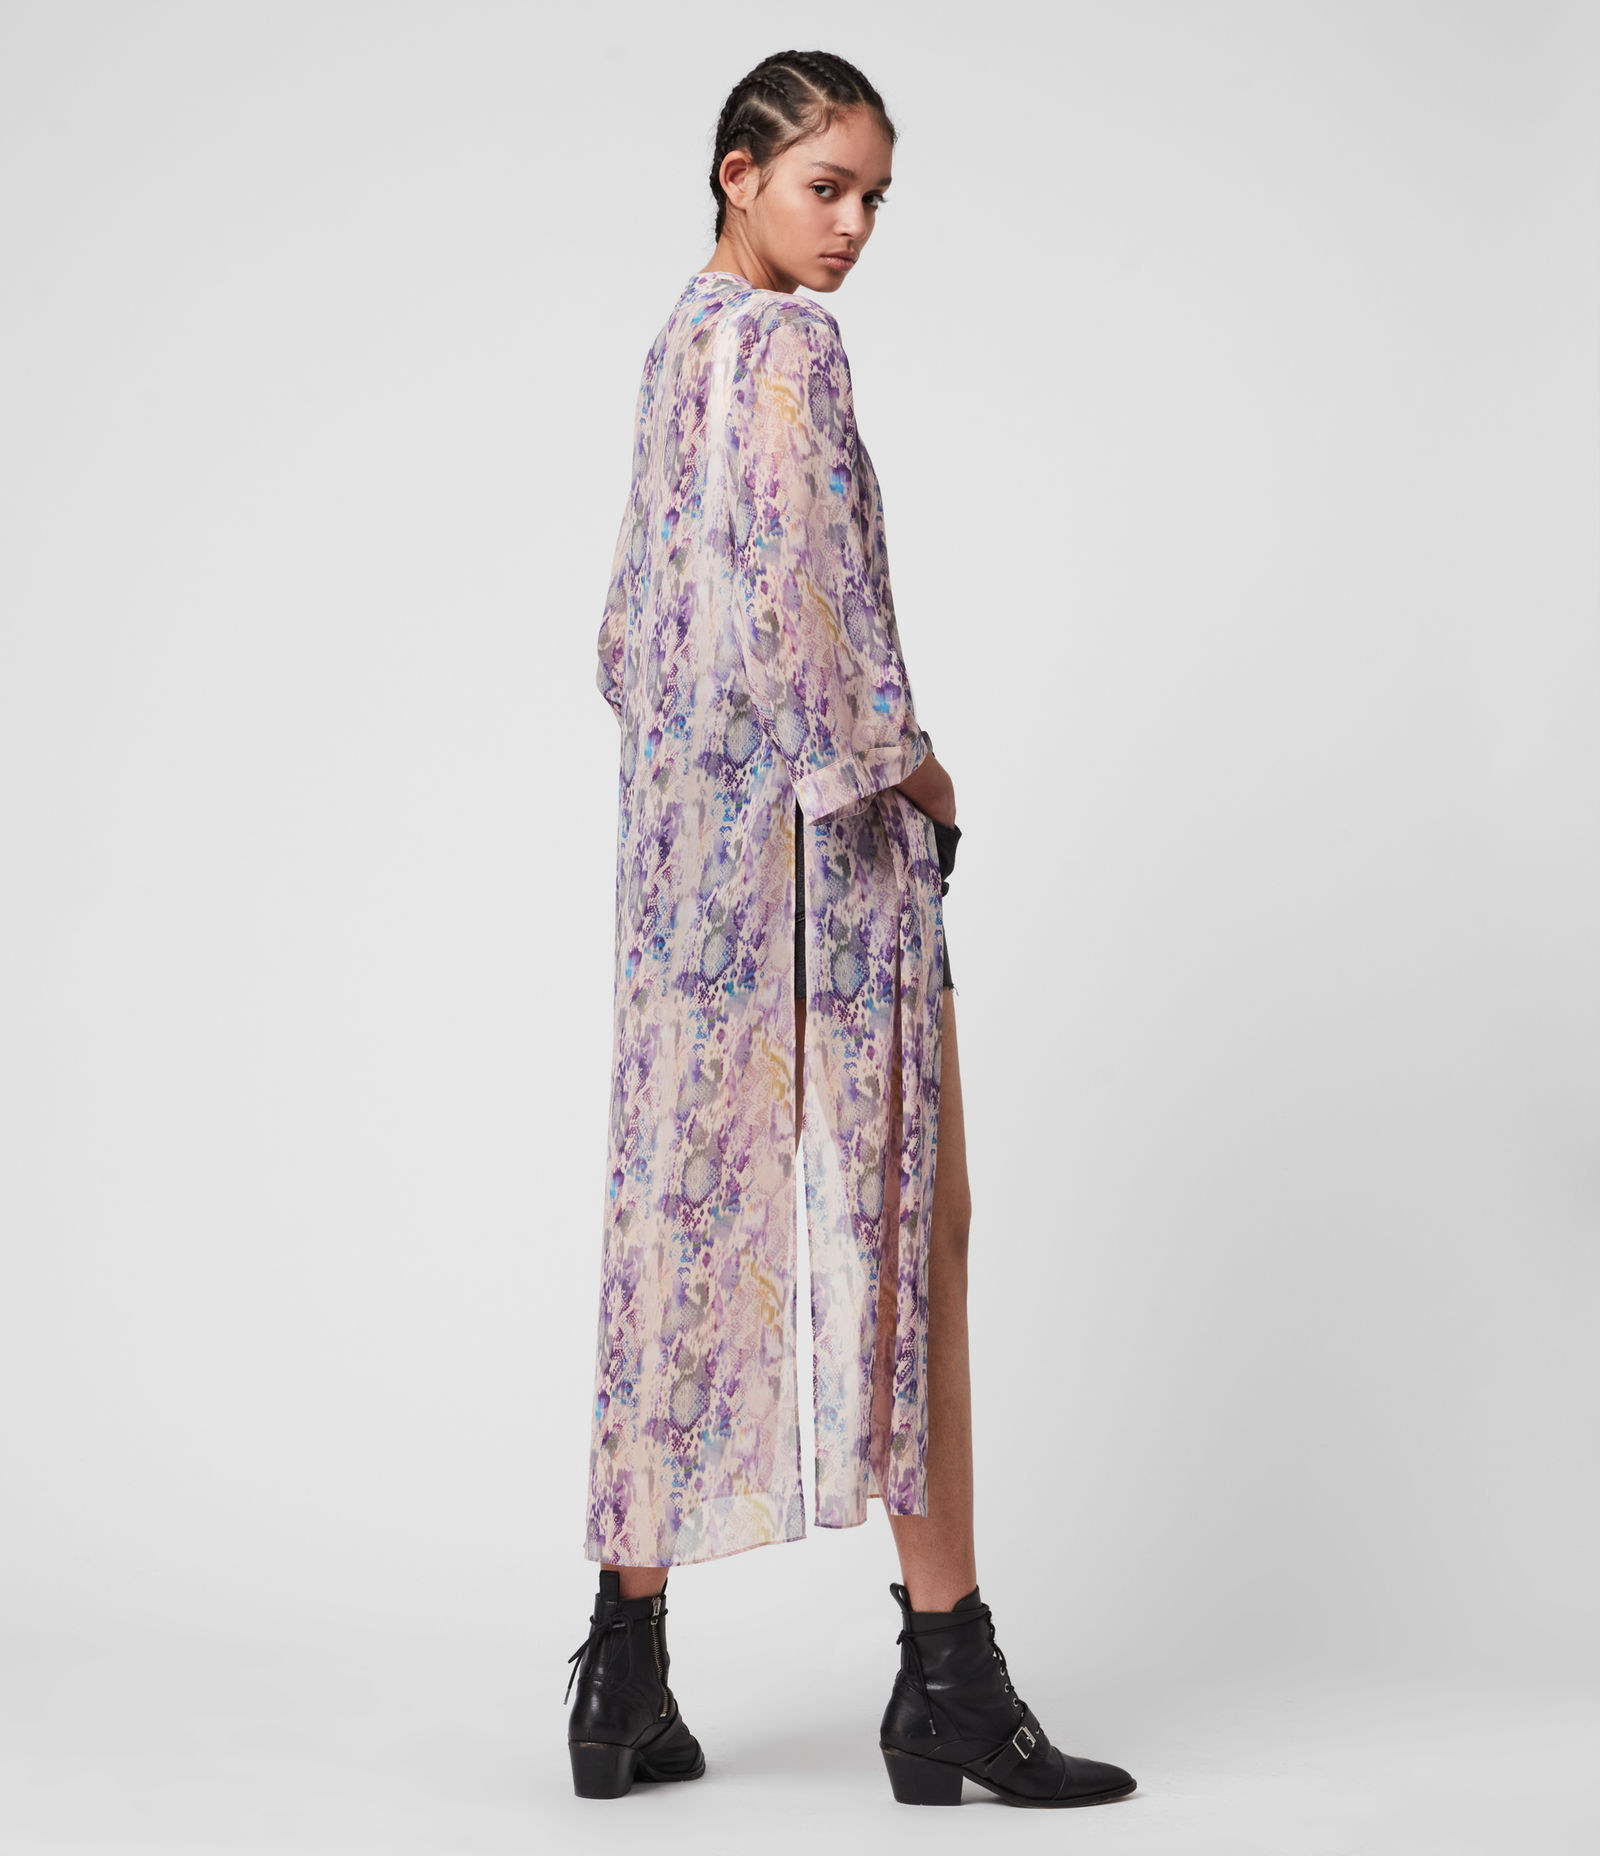 model with back facing the camera wearing a light pink and purple snakeskin print kimono that has a side slit to the waist and an ankle length